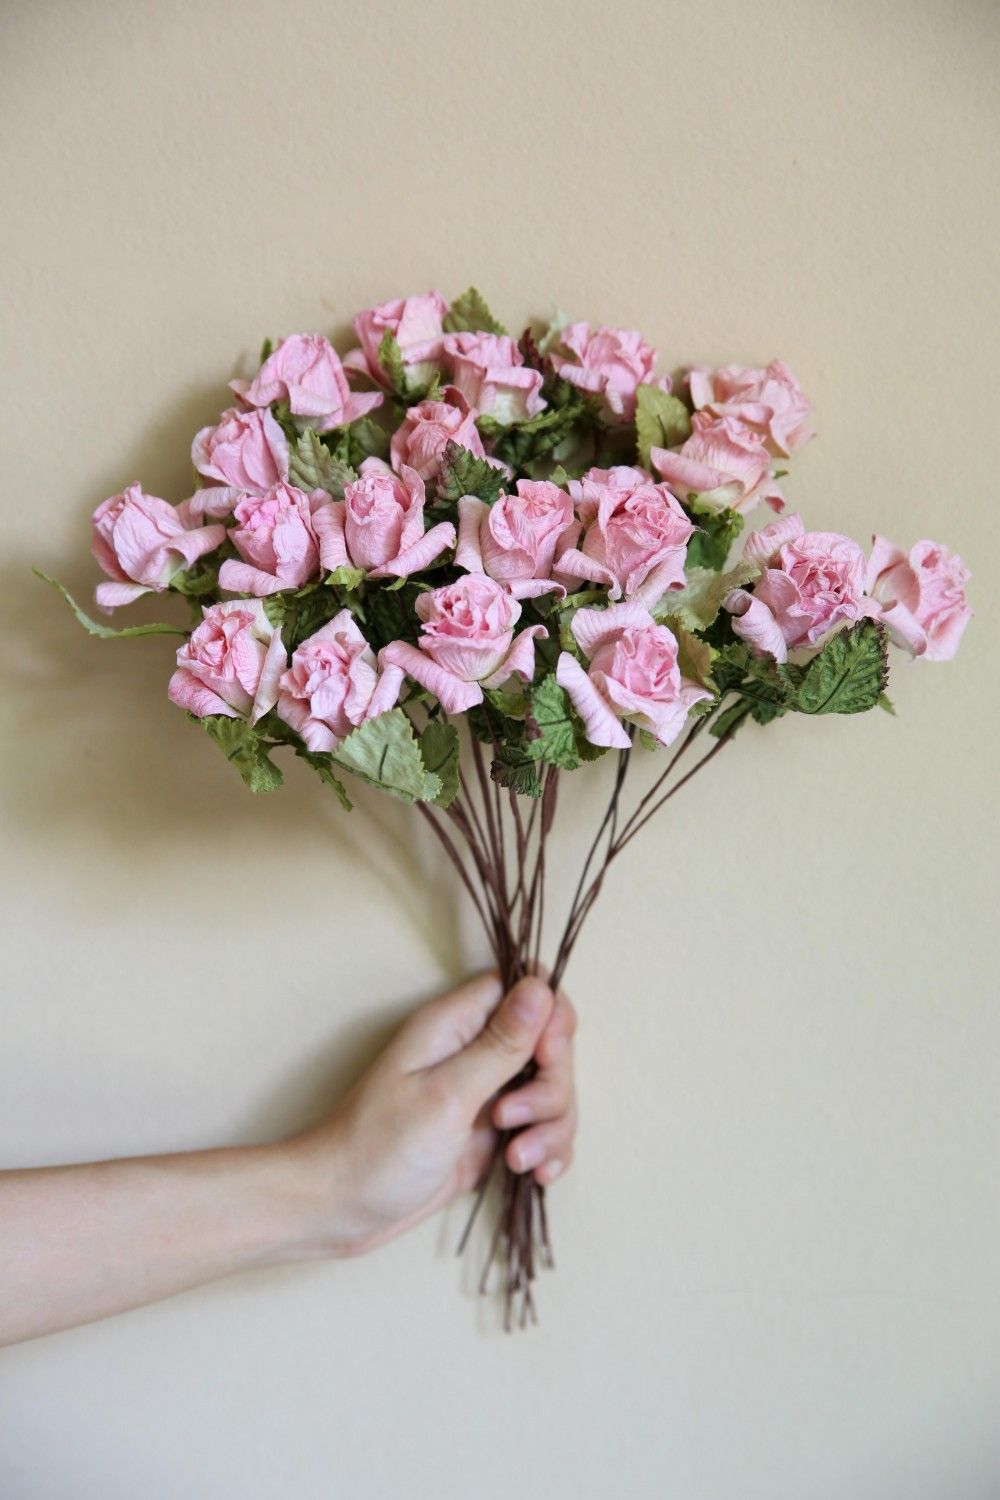 Paper flowers wholesale flowers rose small paper crafts paper flowers wholesale flowers rose small mightylinksfo